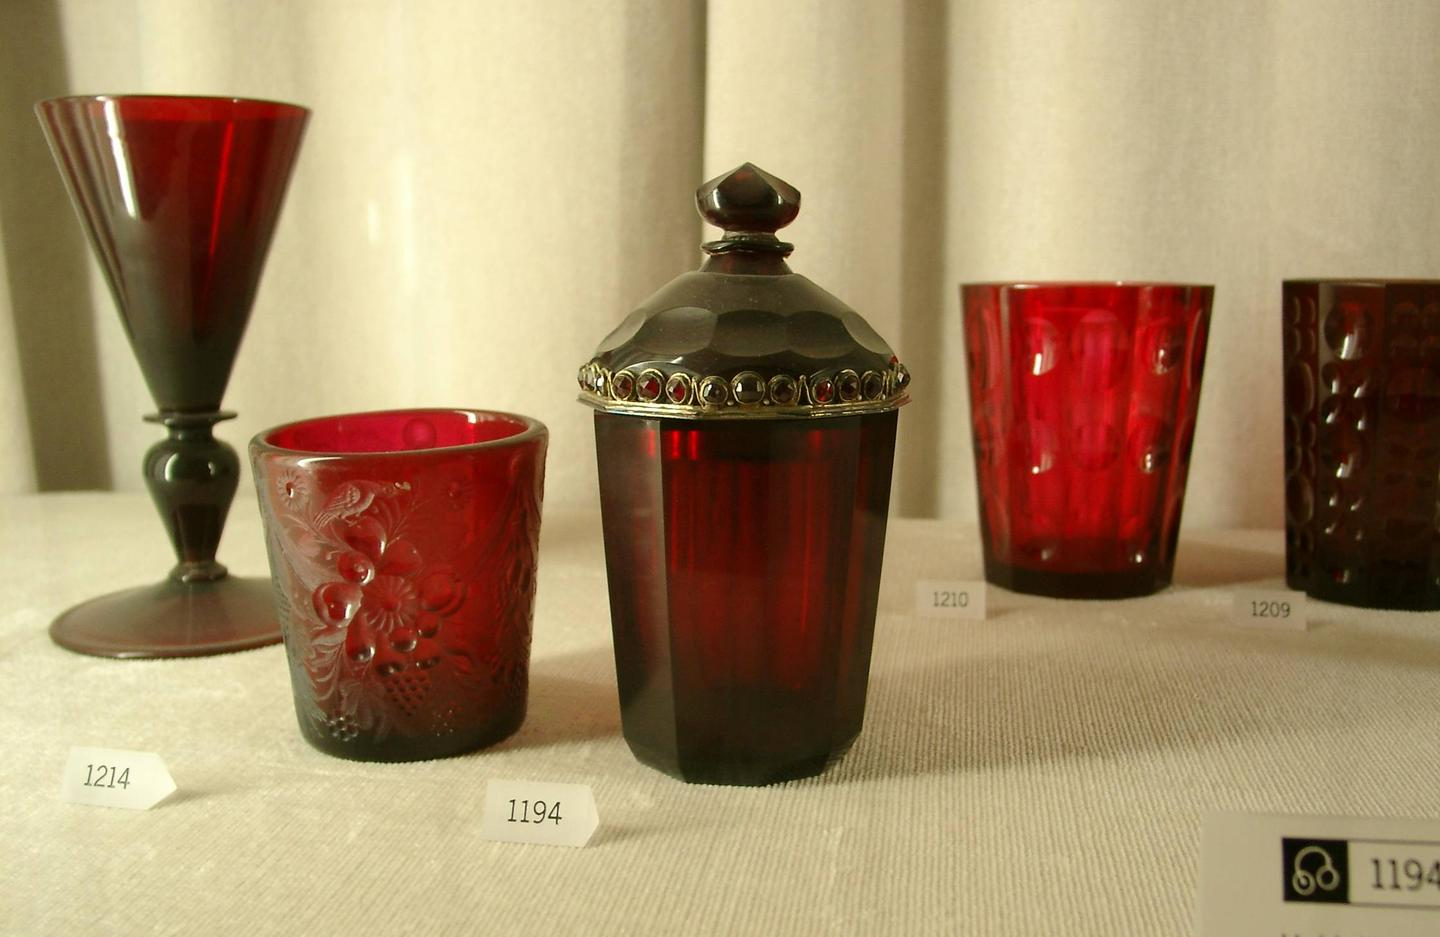 Examples of items made from gold-infused cranberry glass